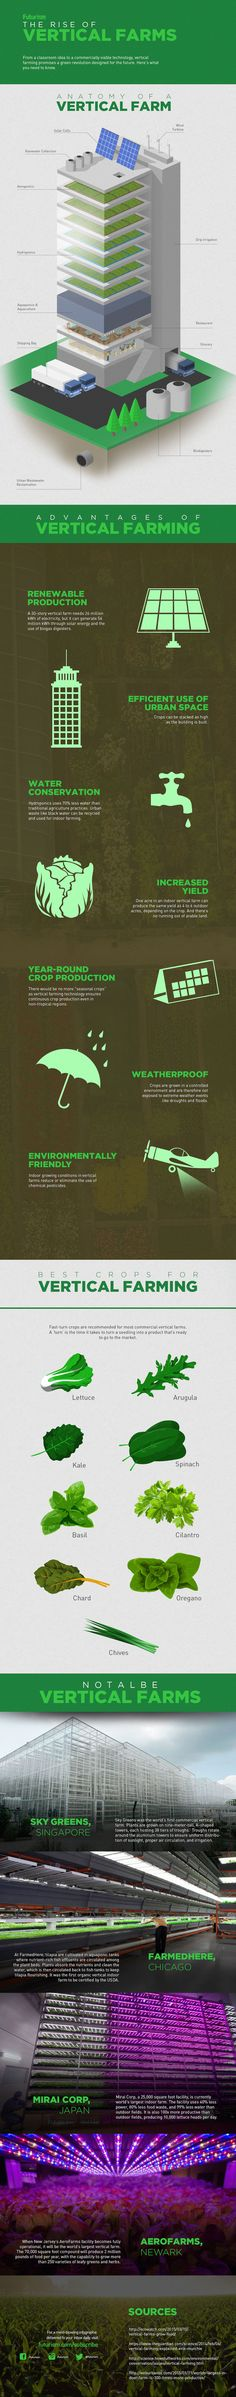 The Rise Of Vertical Farms [Infographic]